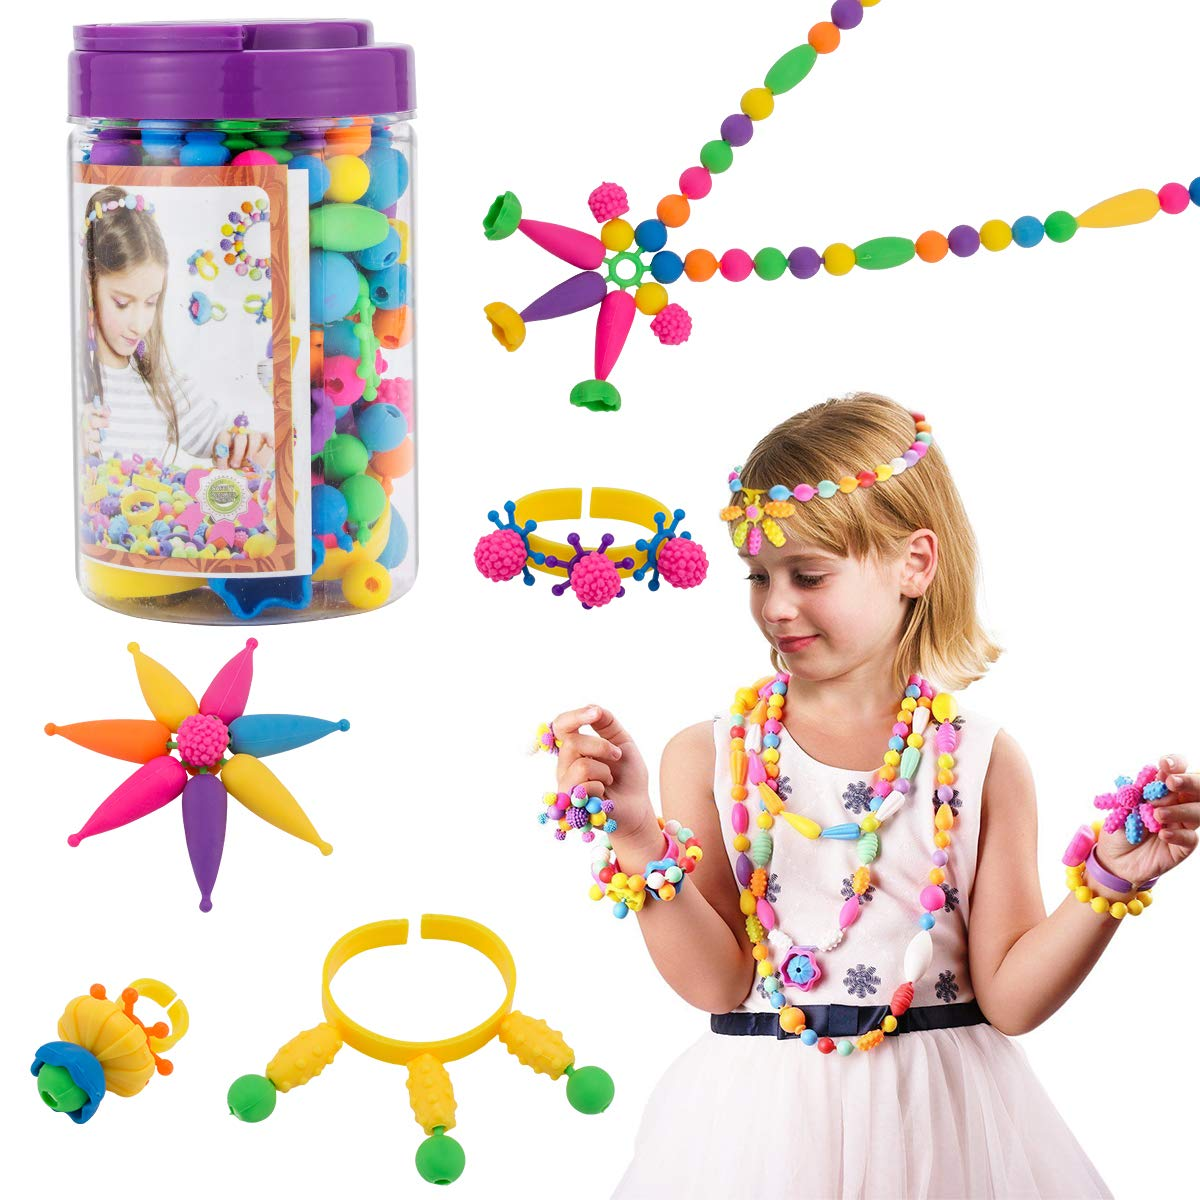 Biubee 180 Pcs Snap Pop Beads Set for Kids Toy Pop Beads DIY Jewelry Making Kit for Ring Bracelet Necklace 3 4 5 6 7 8 Year Old Girls Toddlers